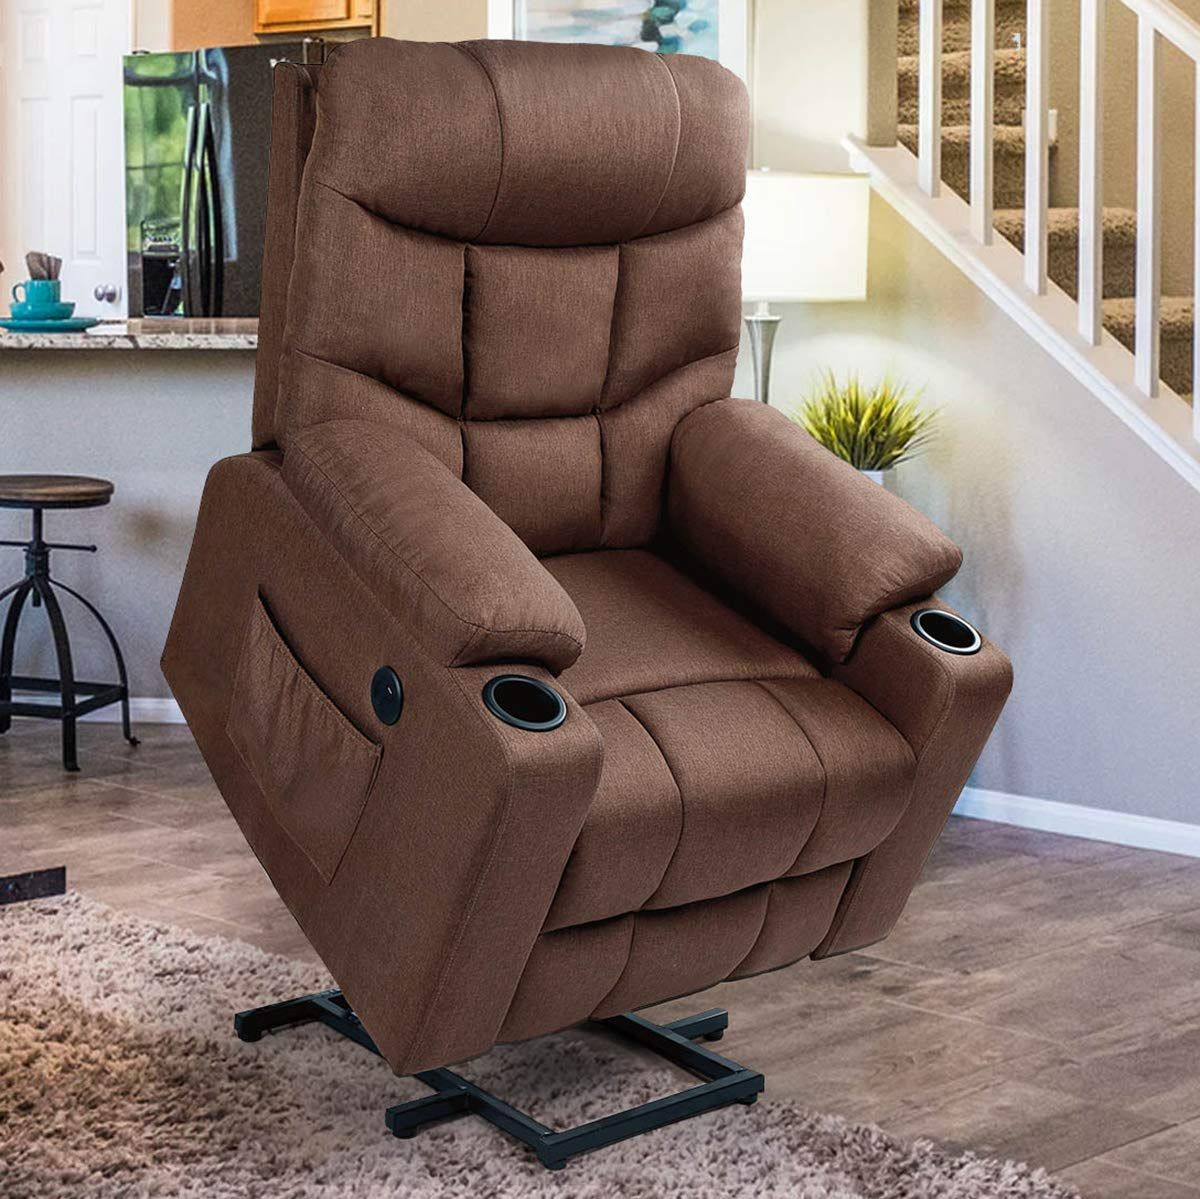 Esright Power Lift Chair Electric Recliner For Elderly Heated Vibration Fabric Sofa Moto Fabric Sofa Living Room Chairs Lift Chairs